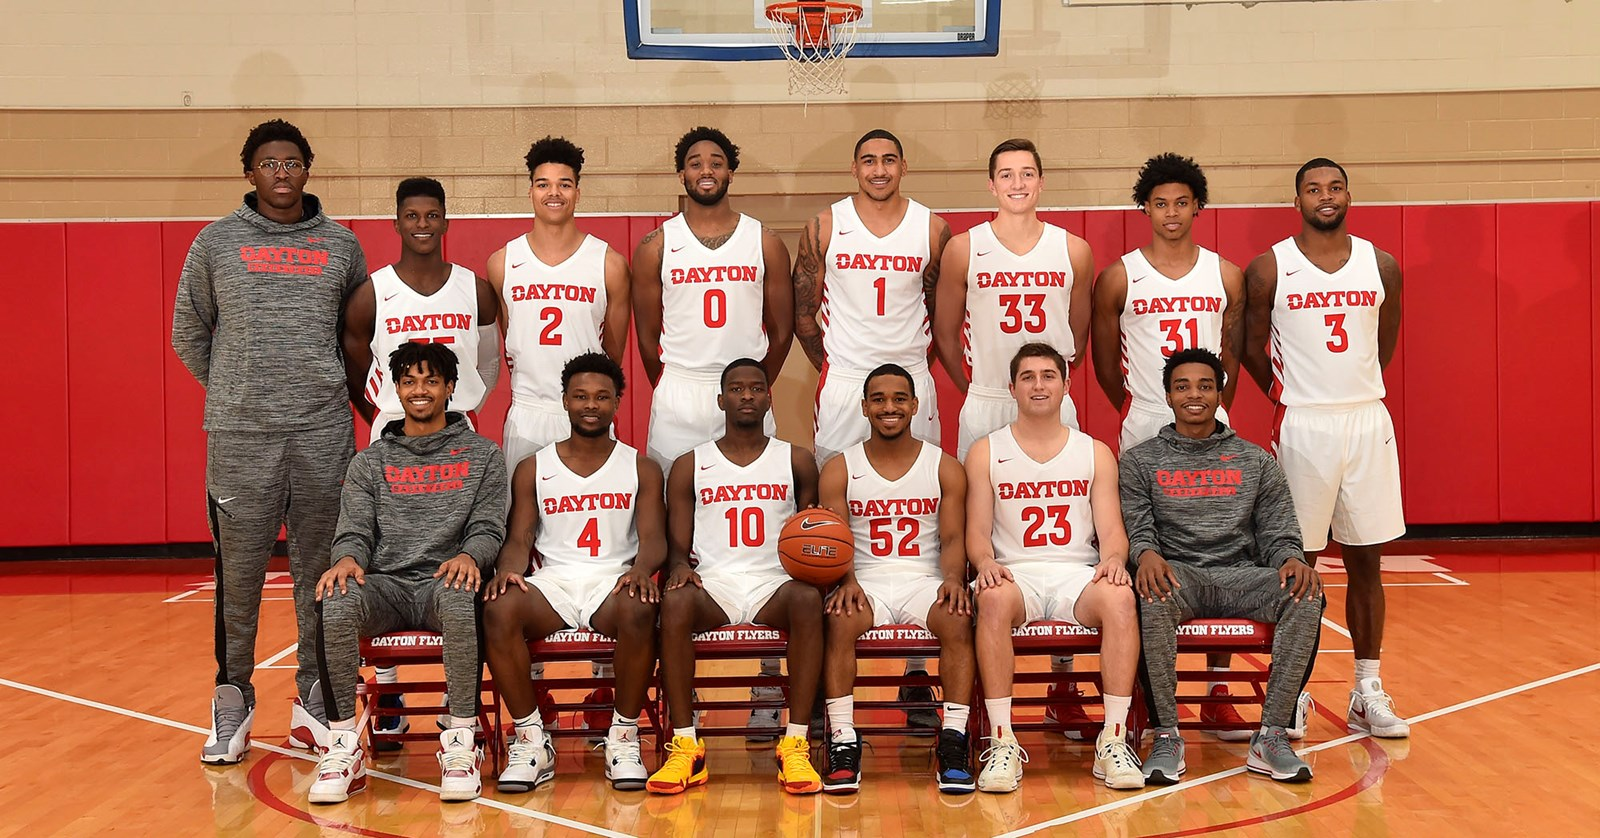 2018-19 men's basketball roster - university of dayton athletics